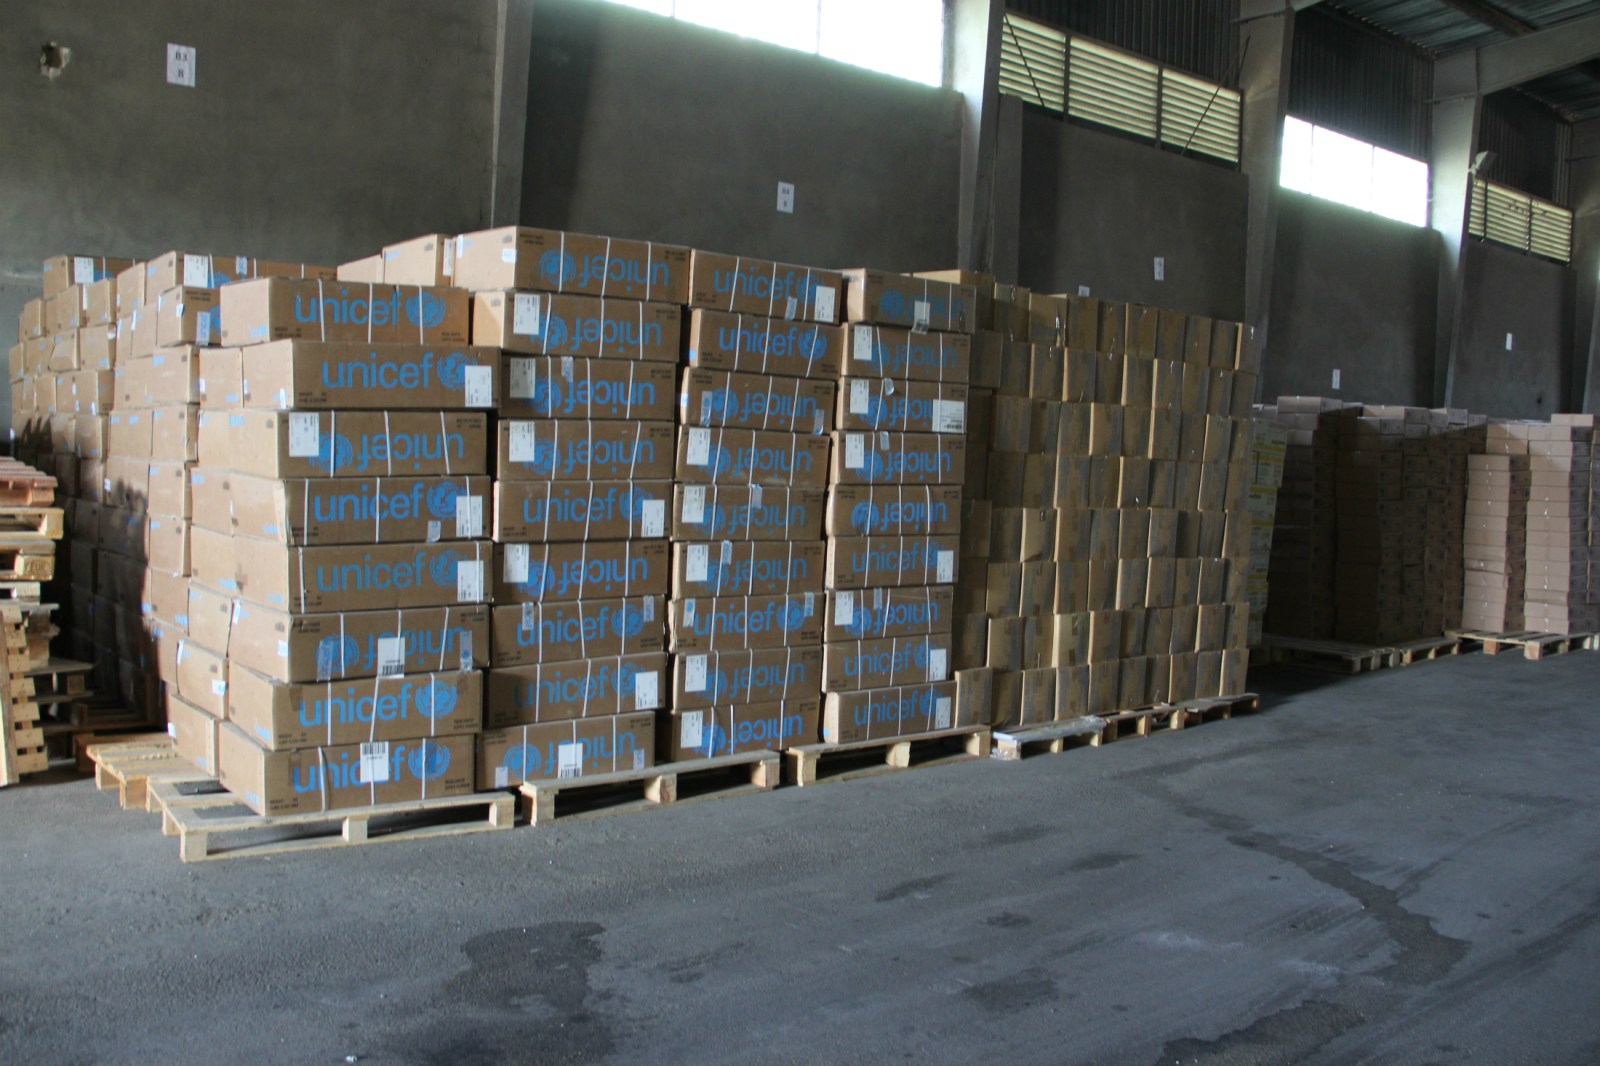 Boxes of UNICEF emergency supplies in the warehouse